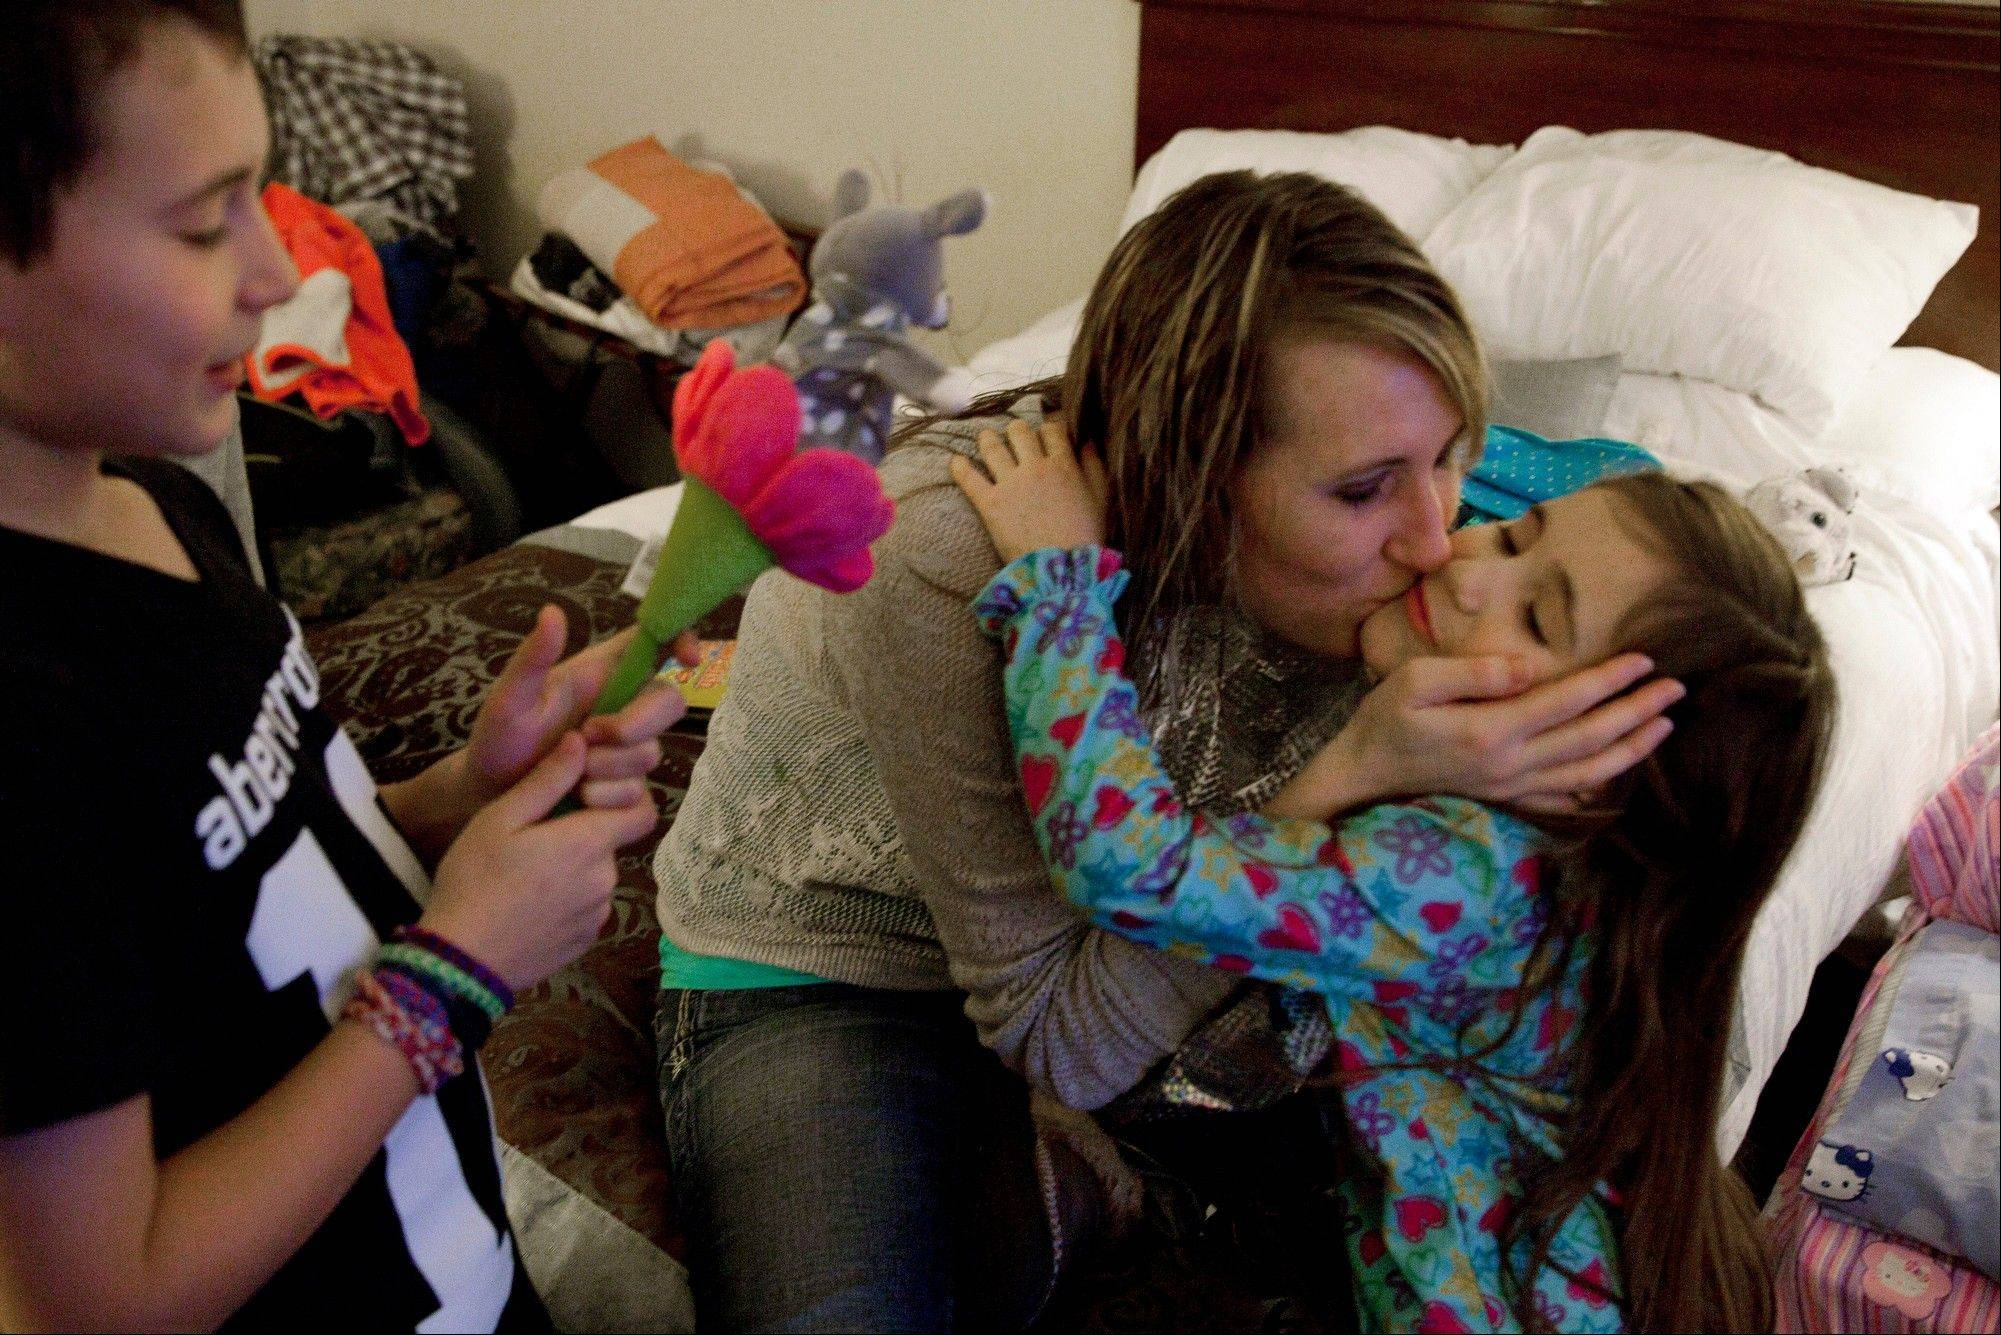 Jill Ghantous kisses her daughter, Briana Ghantous, 6, at the Wingate Hotel in Grand Blanc Township, Mich. The Ghantous family lost power on Sunday at their home in Swartz Creek due to ice storms that have left about 40,000 people in Genesee County without power.